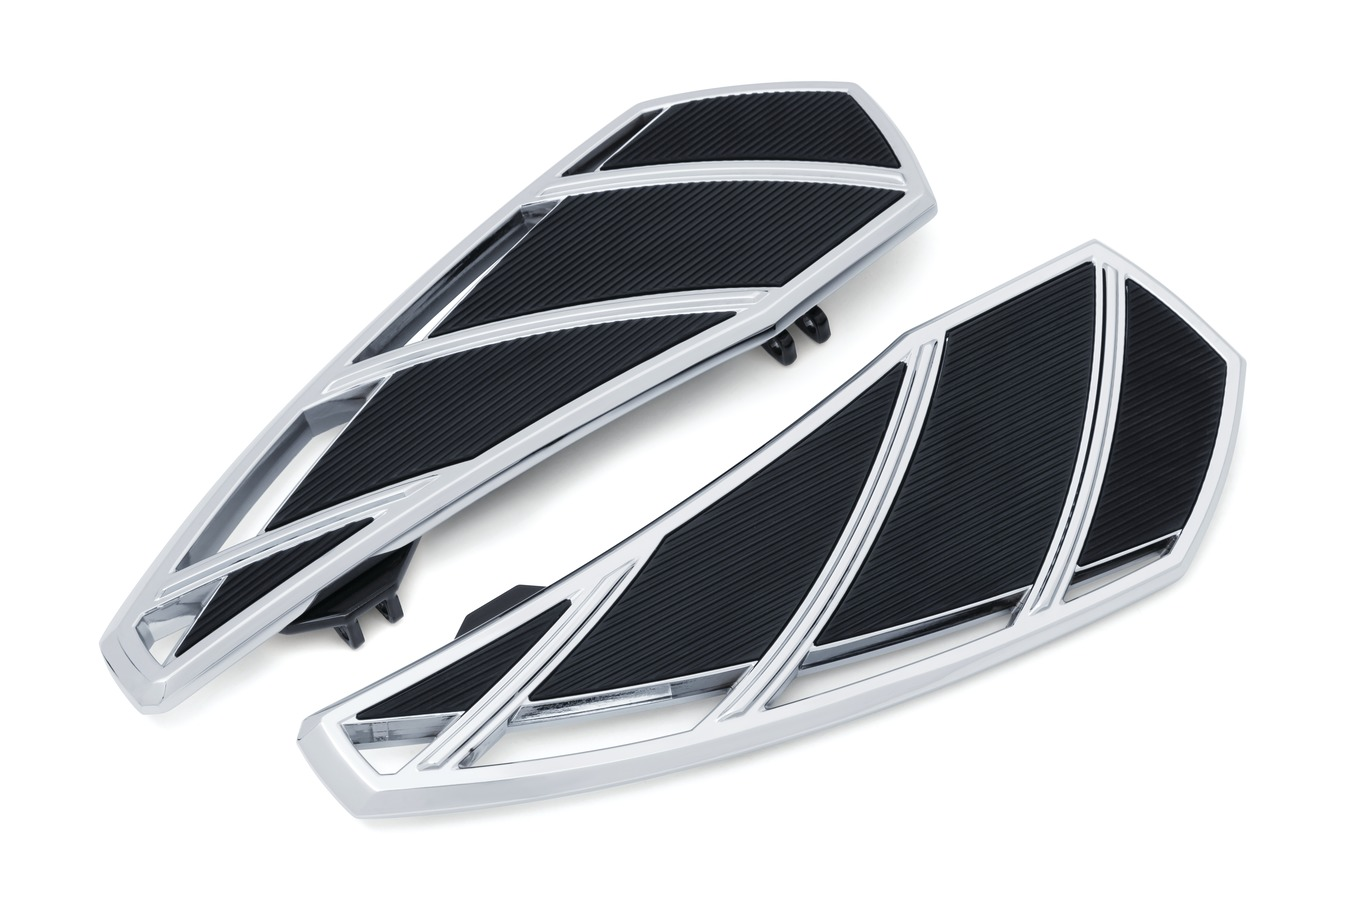 190917 PN#5792 - Phantom Driver Floorboards, Chrome